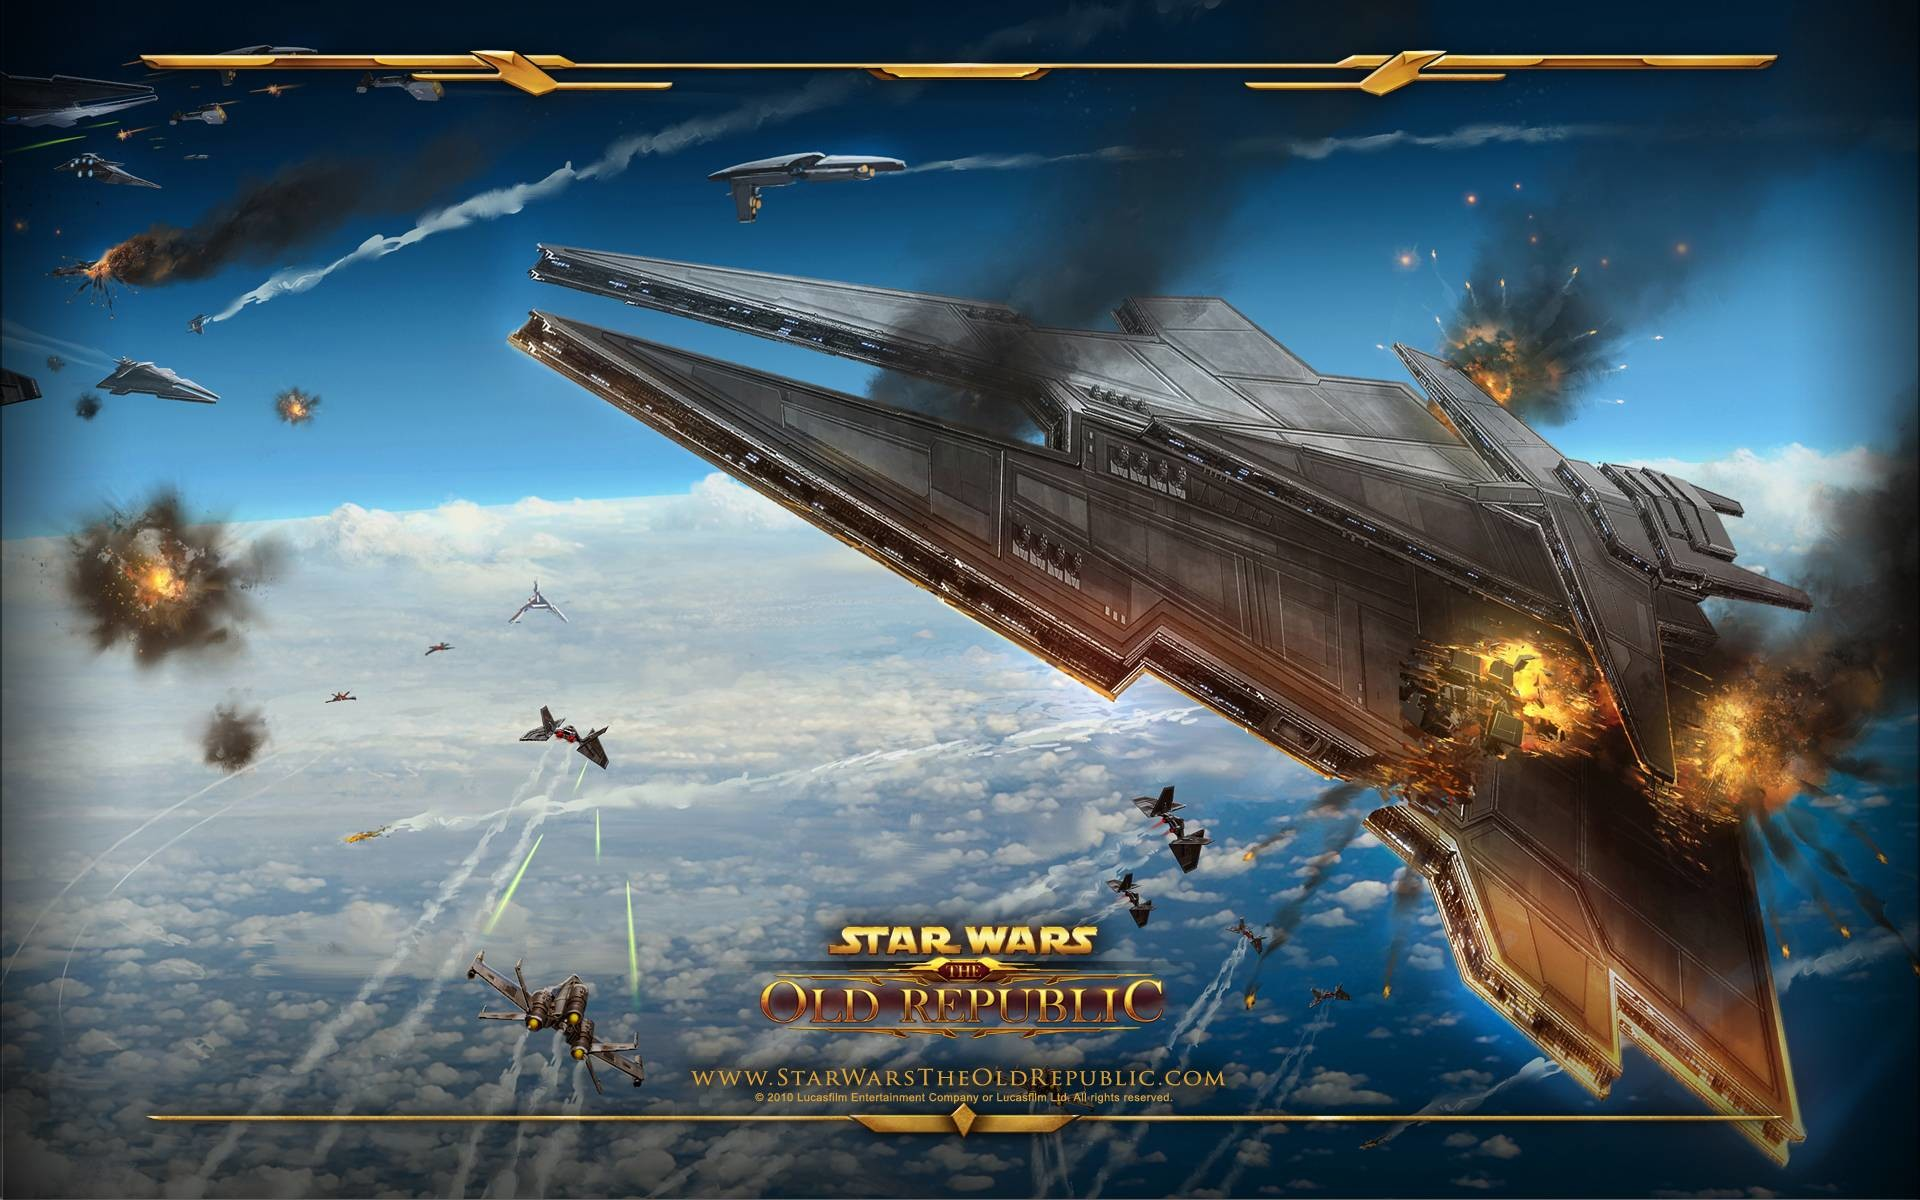 Star Wars The Old Republic Wallpapers – Full HD wallpaper search